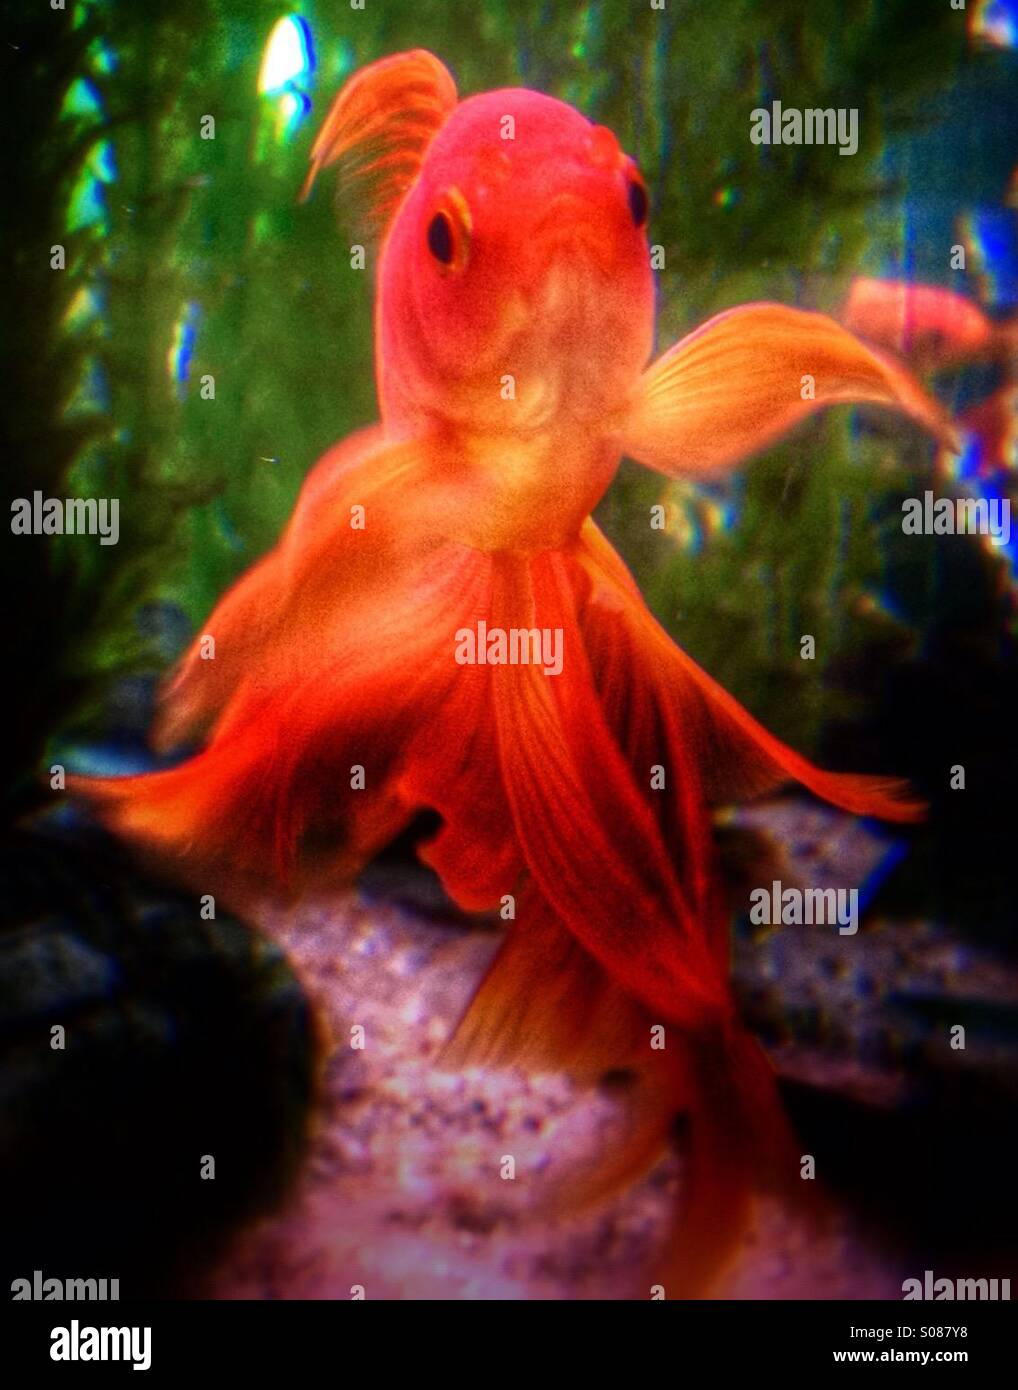 Gold Fish Color Stock Photos & Gold Fish Color Stock Images - Alamy